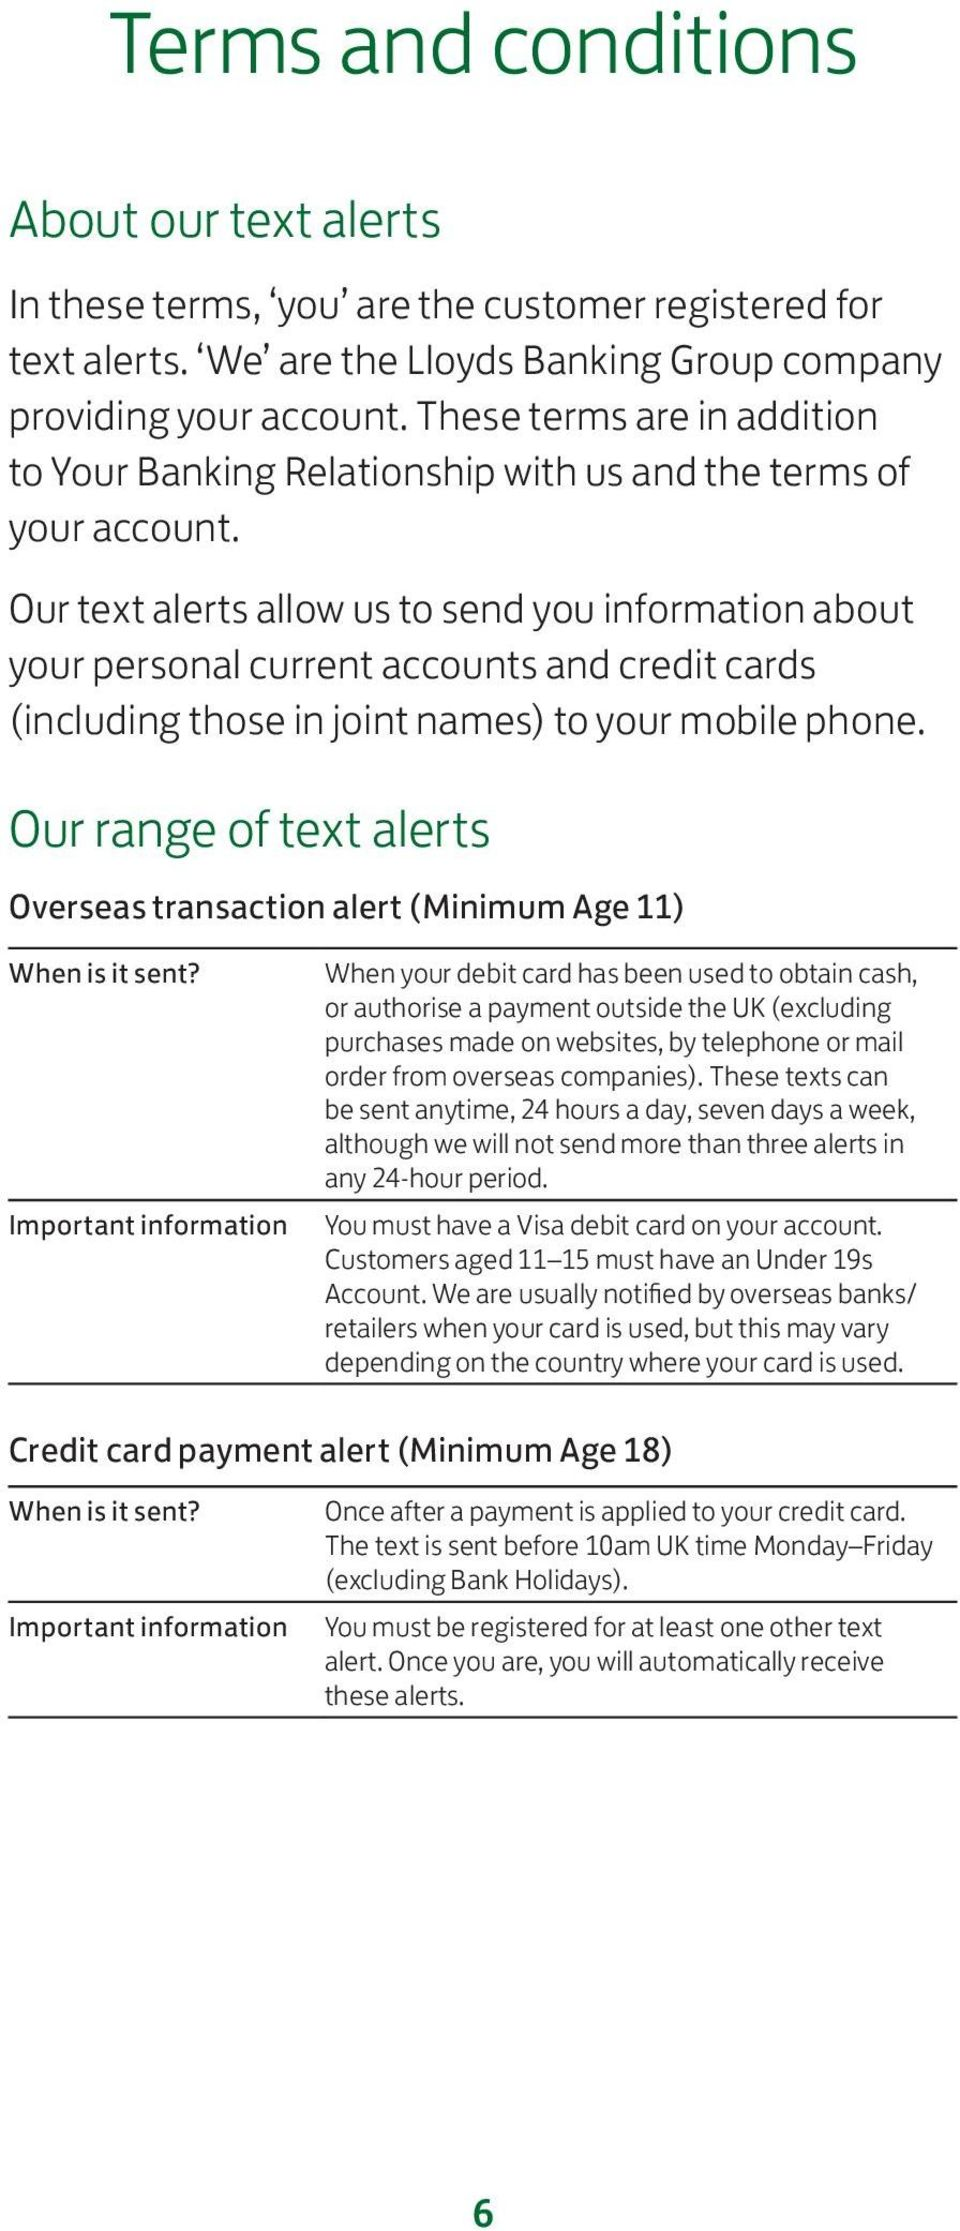 Our text alerts allow us to send you information about your personal current accounts and credit cards (including those in joint names) to your mobile phone.